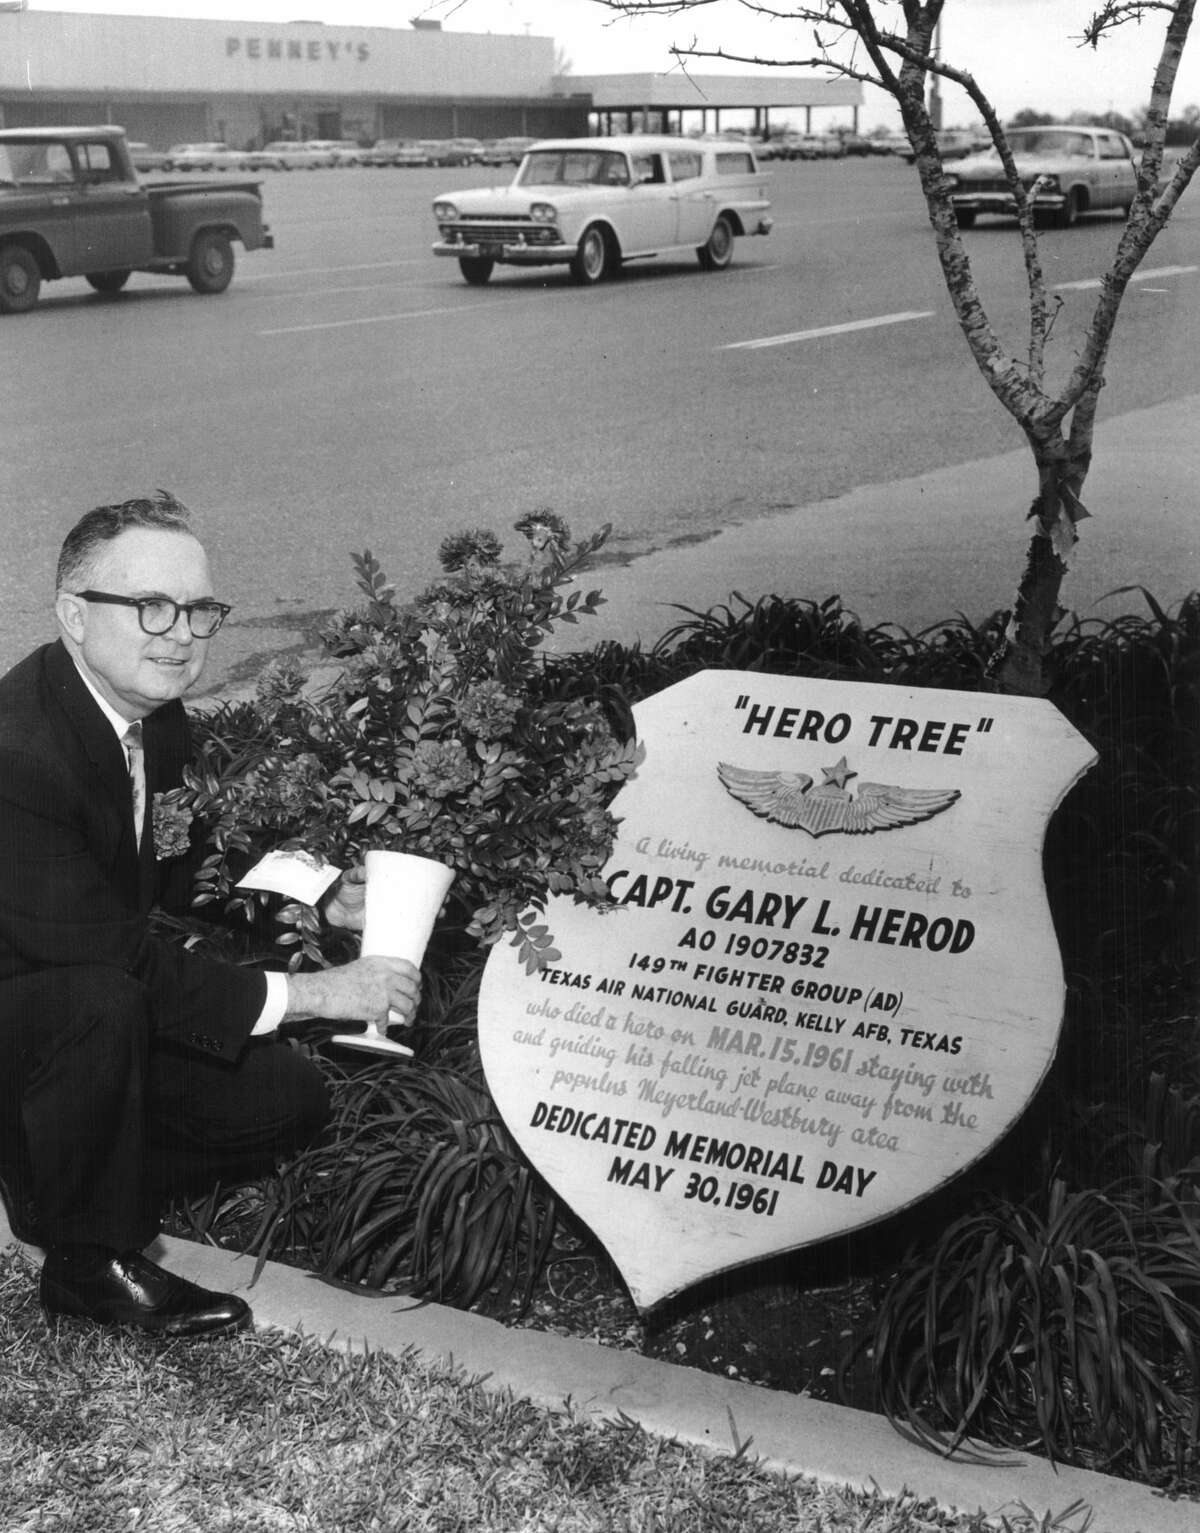 Circa March 1963: William R. Byers, of 5234 Cheena, president of the Myerland Merchants Exchange, is shown placing a vase of flowers at the base of the